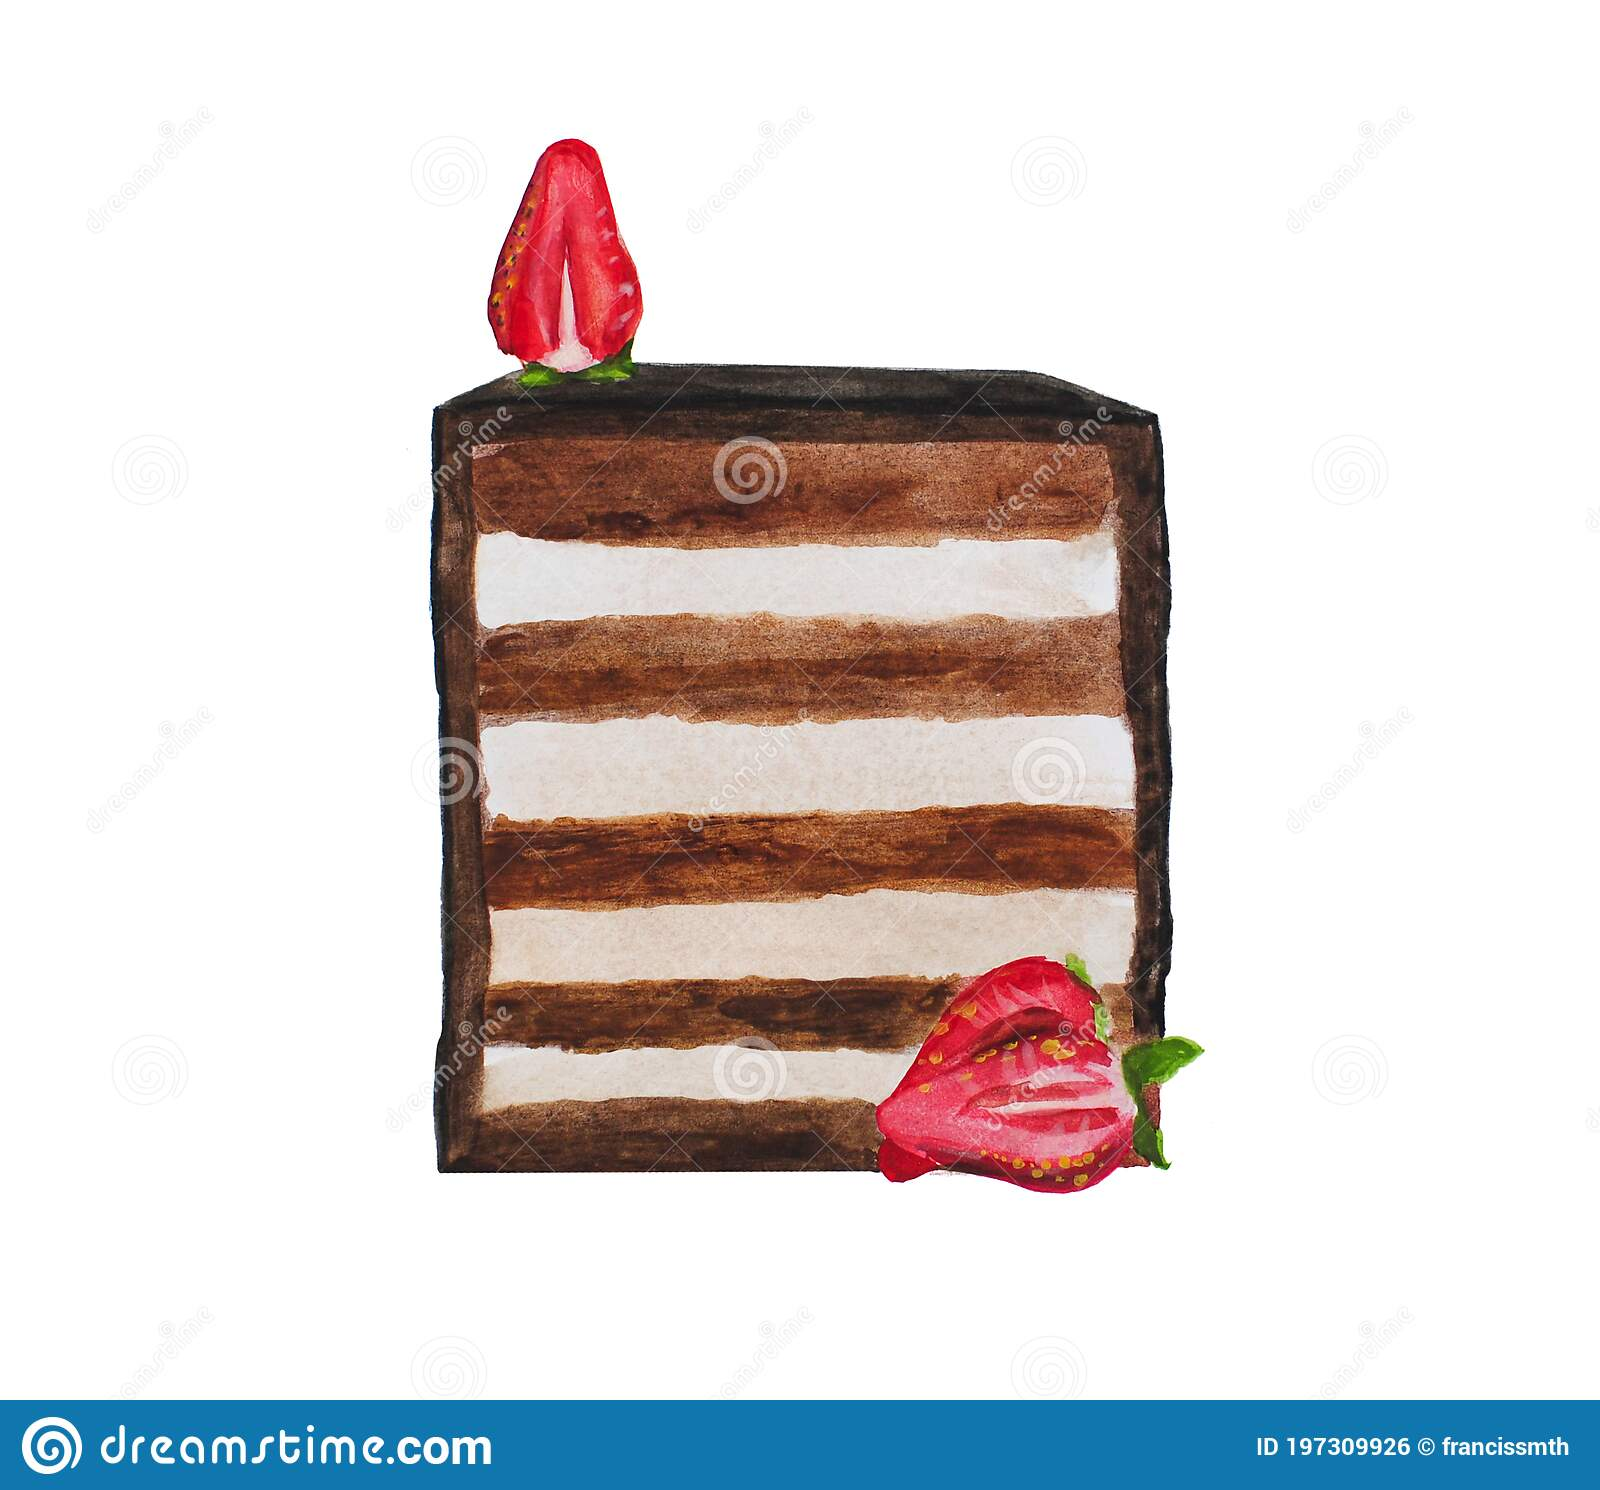 A Slice Of Chocolate Cake With Strawberries In The Cut Watercolor Drawing Stock Illustration Illustration Of Bakery Menu 197309926